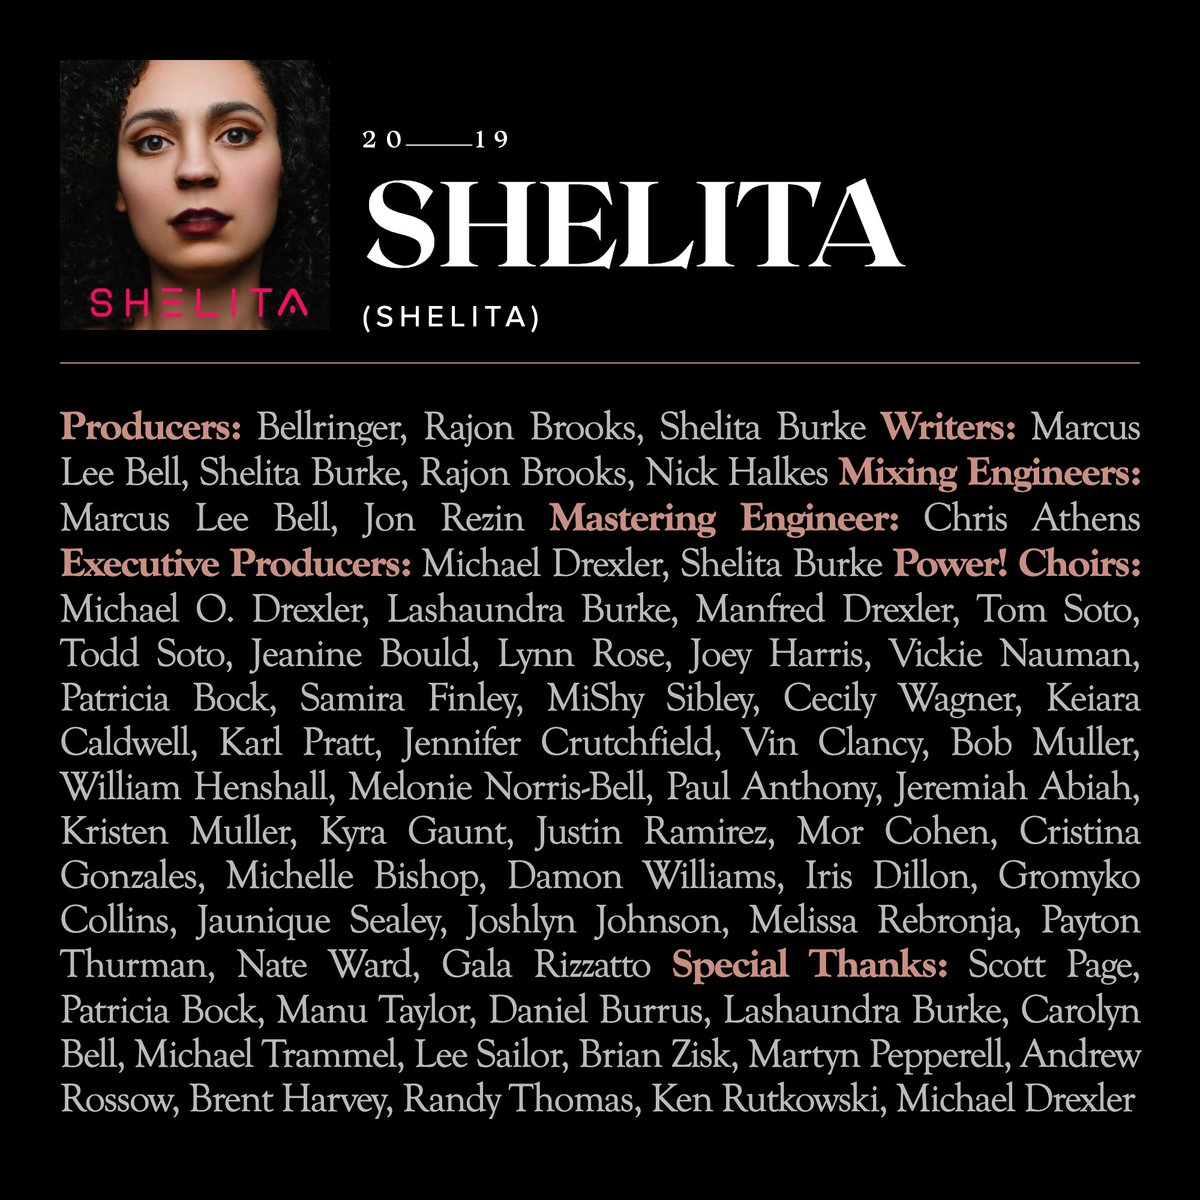 Let's celebrate with the Recording Academy all the amazing human beings that help make the SHELITA possible in the world!  Full SHELITA album credits ❤️💖 #BehindTheRecord #GiveCredit  #WeAreMusic @RecordingAcad https://t.co/wKKzDtpIIl